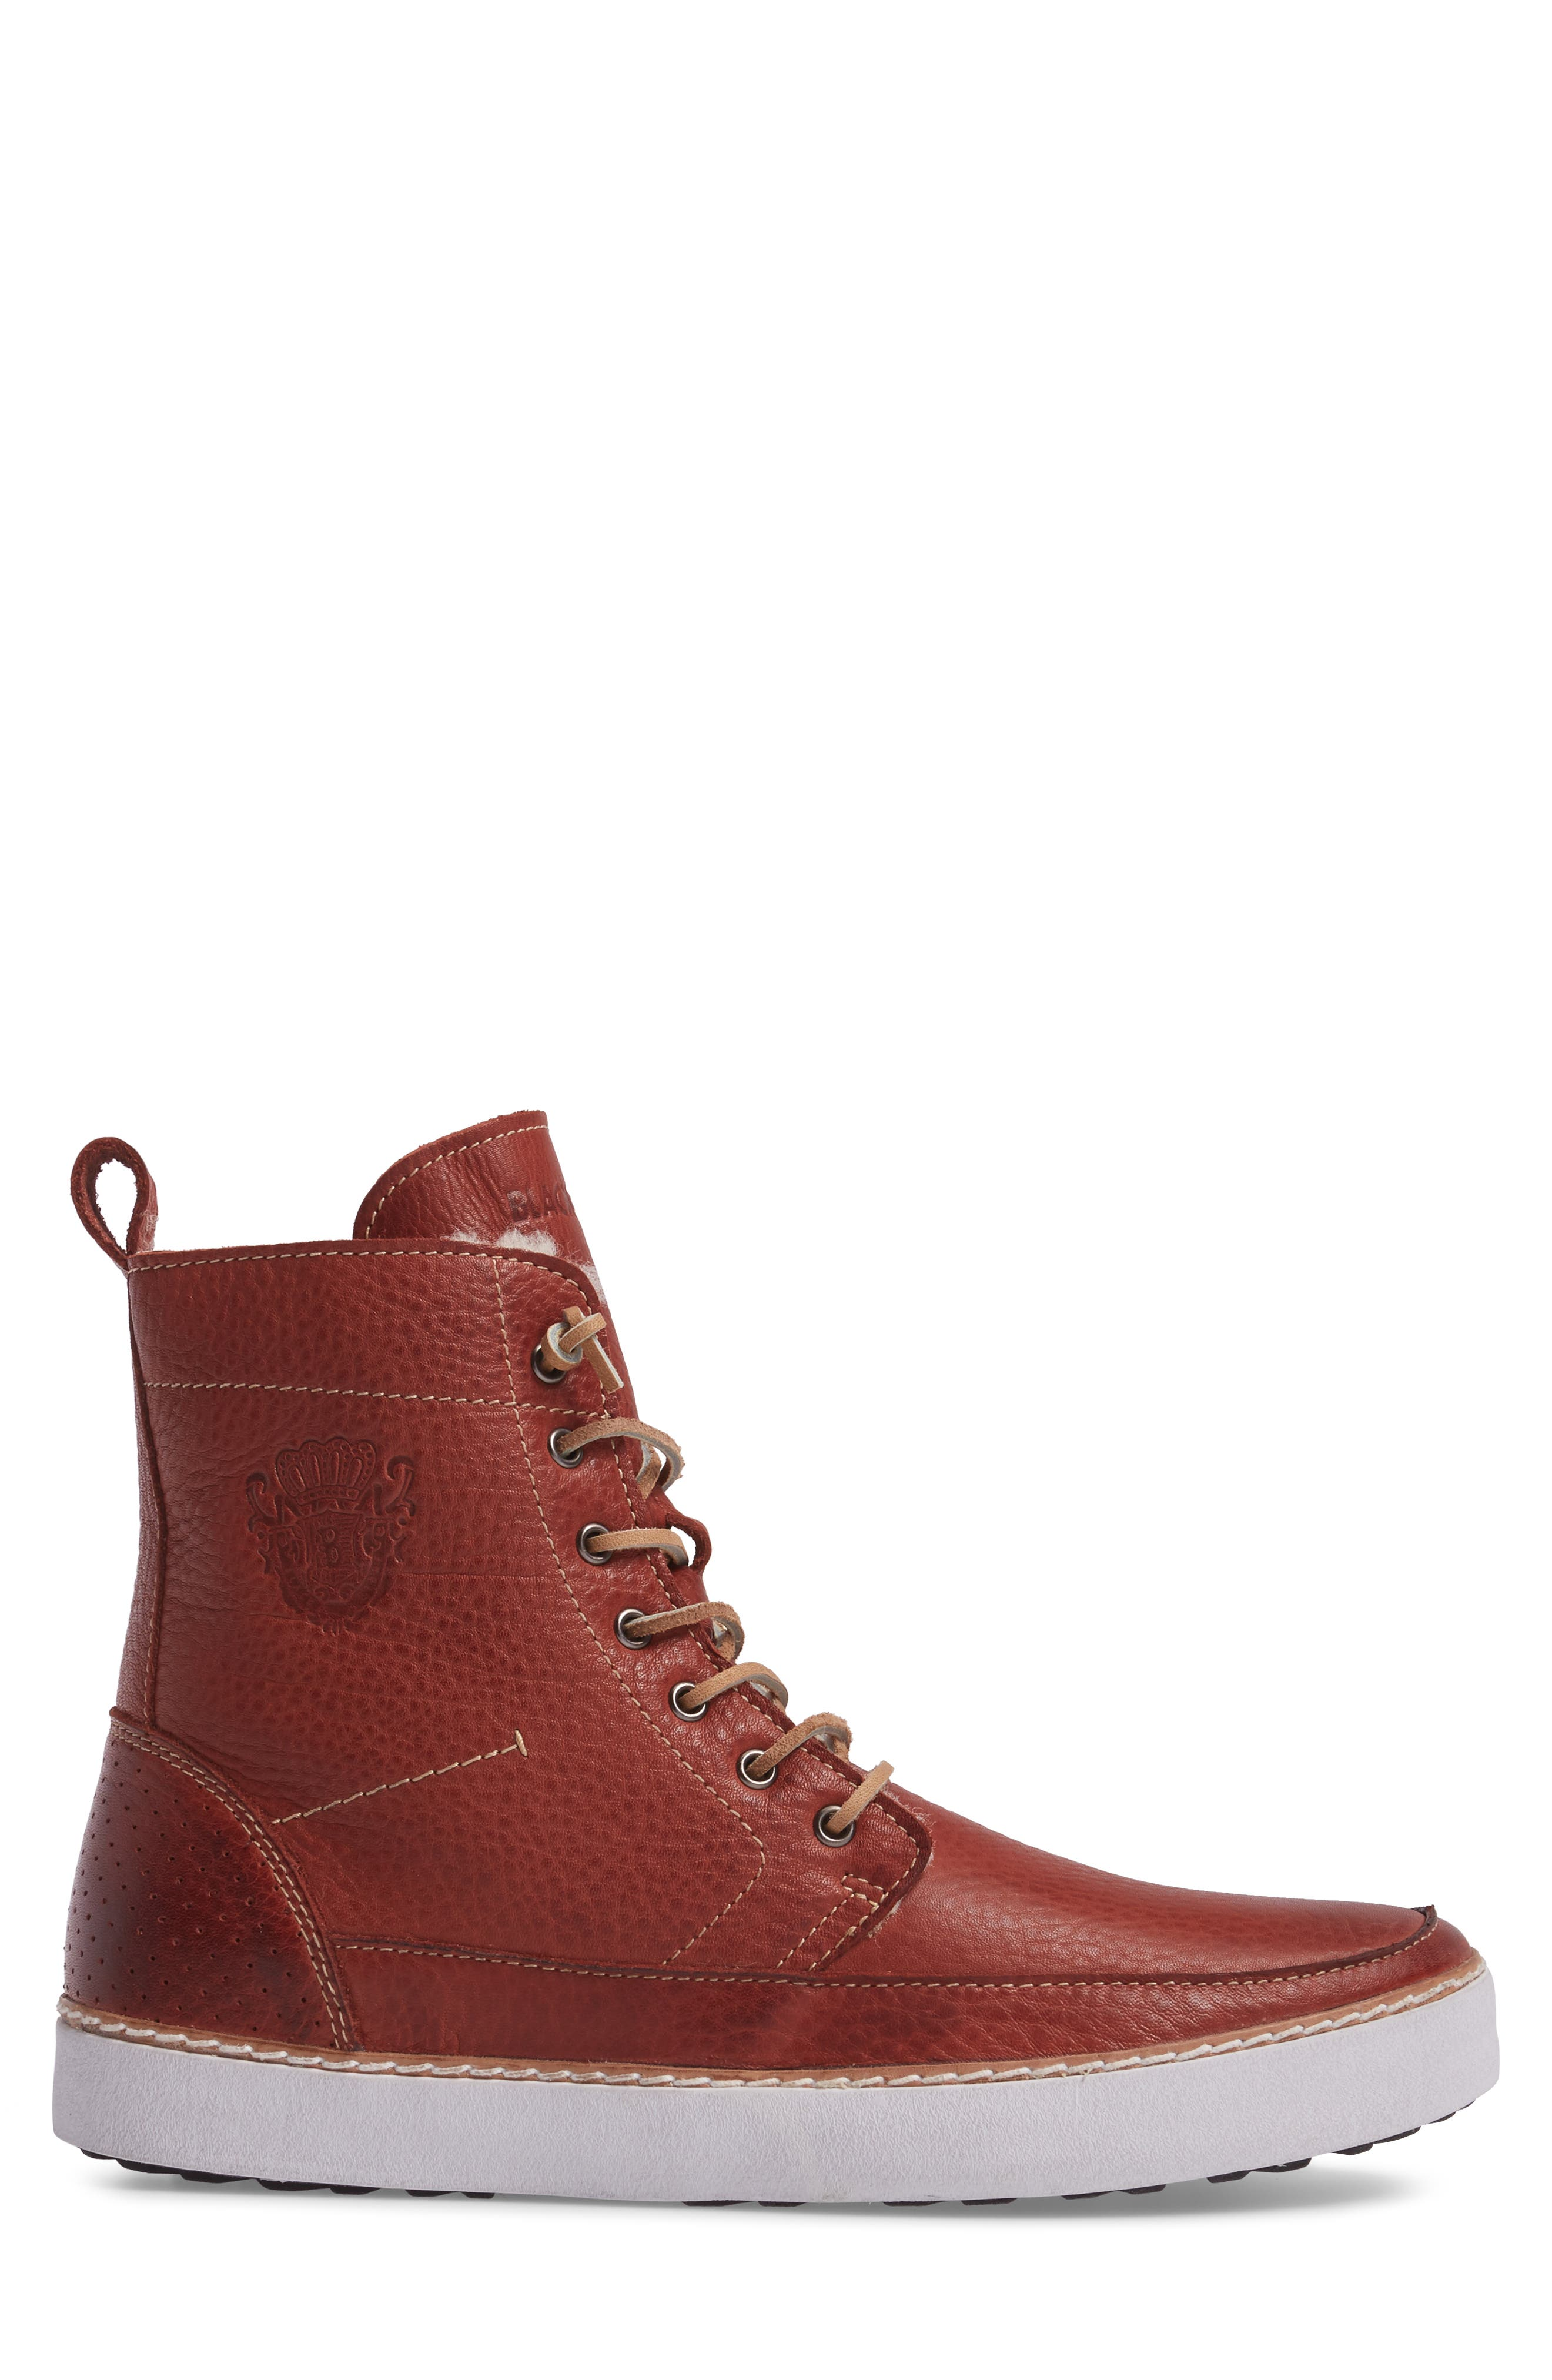 'AM 32' Shearling Lined Boot,                             Alternate thumbnail 3, color,                             200